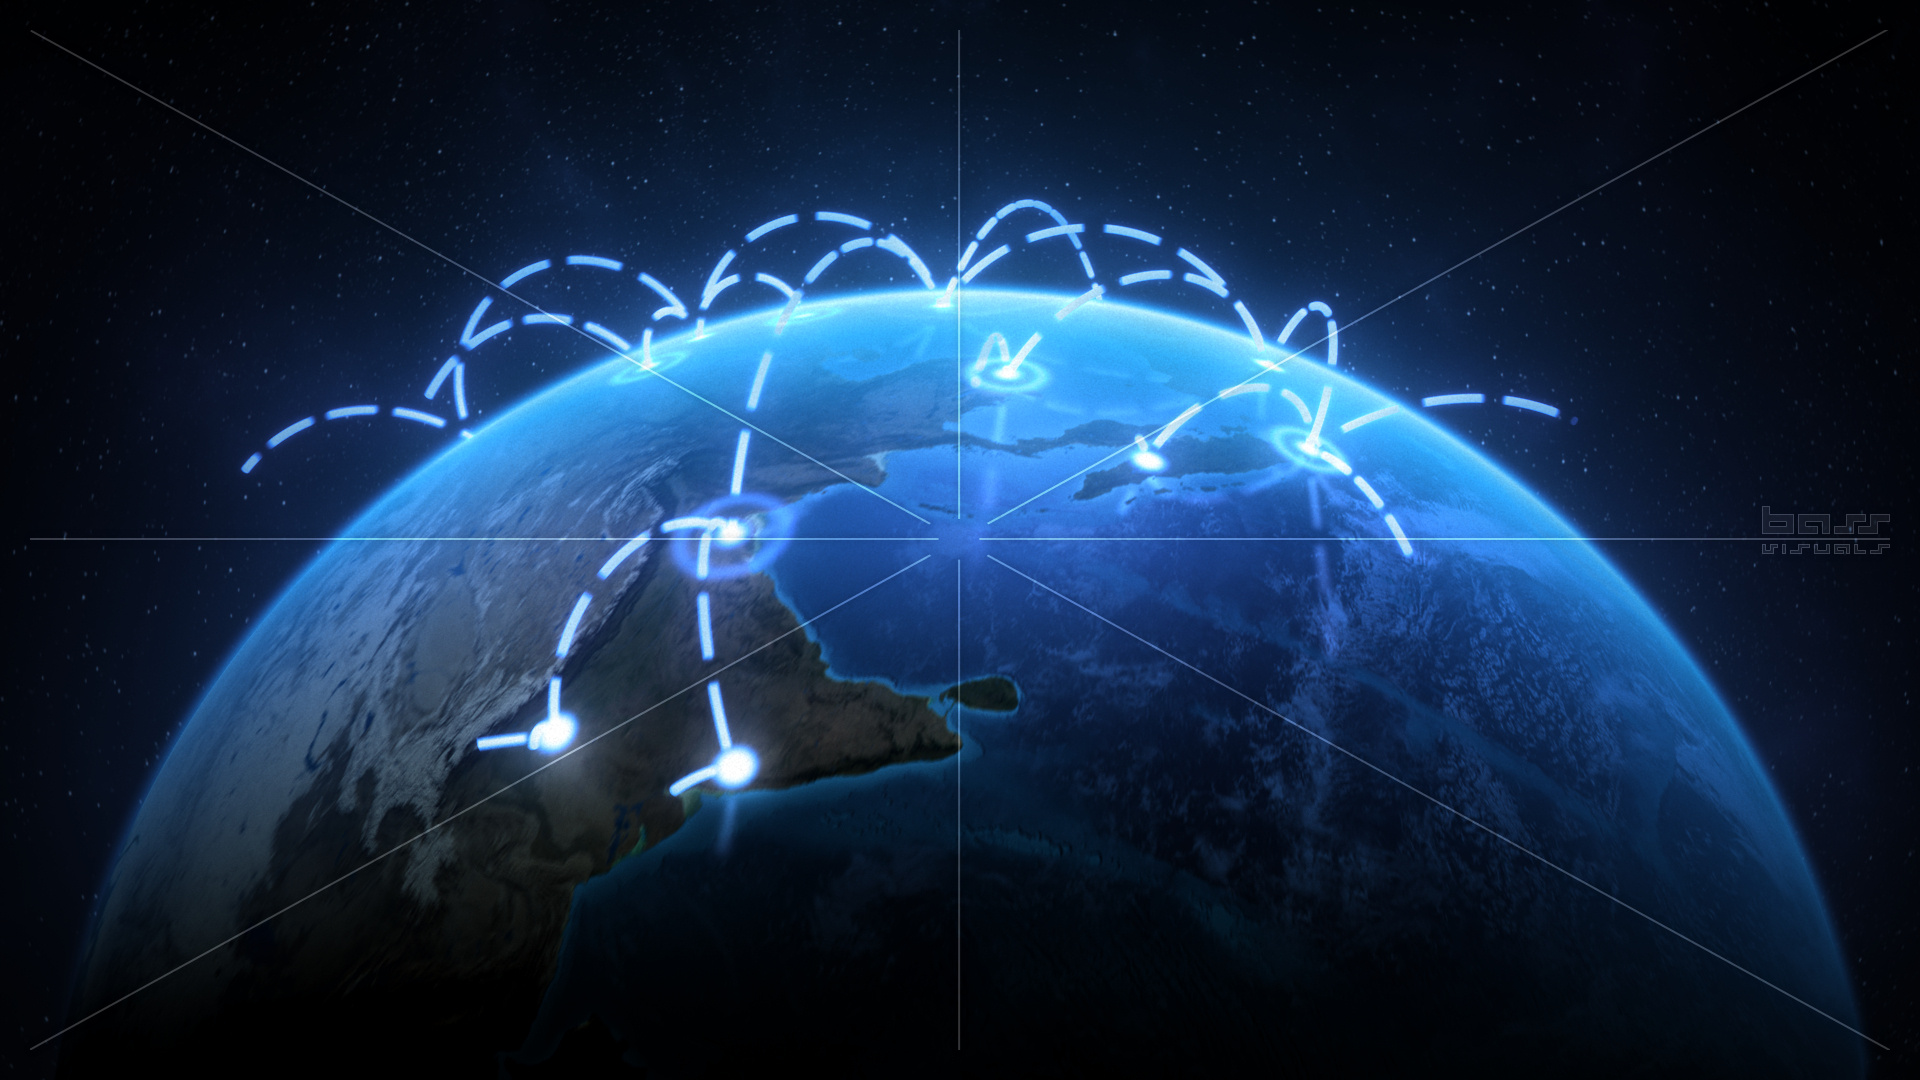 Growing Global Network Versions Bass Visuals 1920x1080